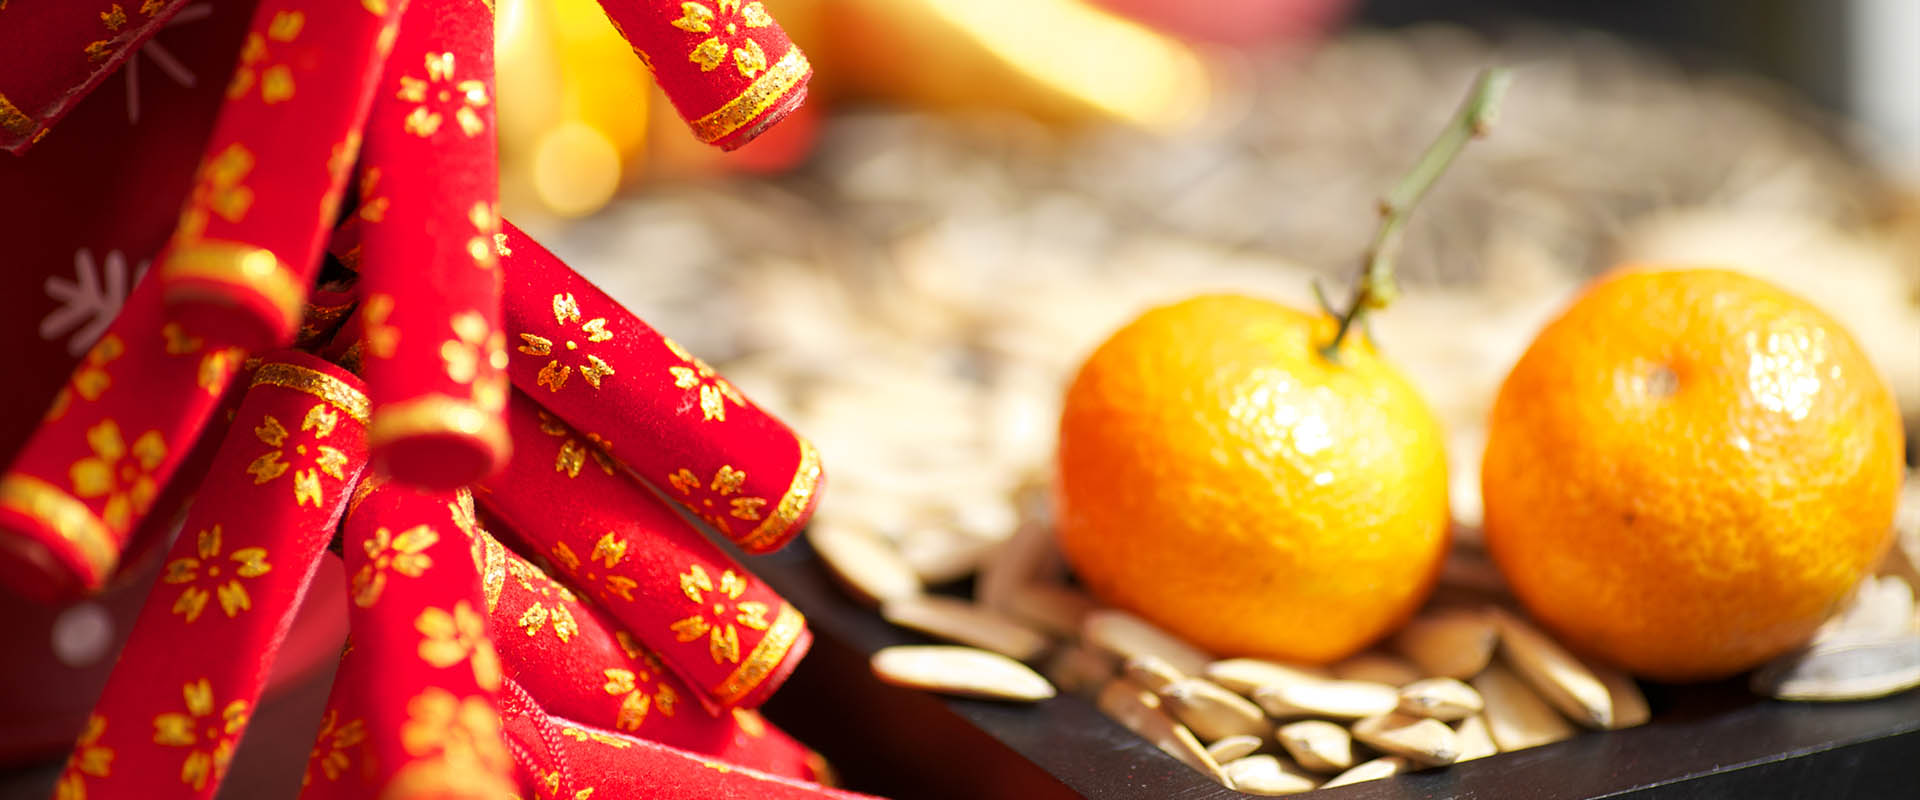 chinese-new-year-2019-zeitraum-with-and-2020-publicholidays-com-my.jpg